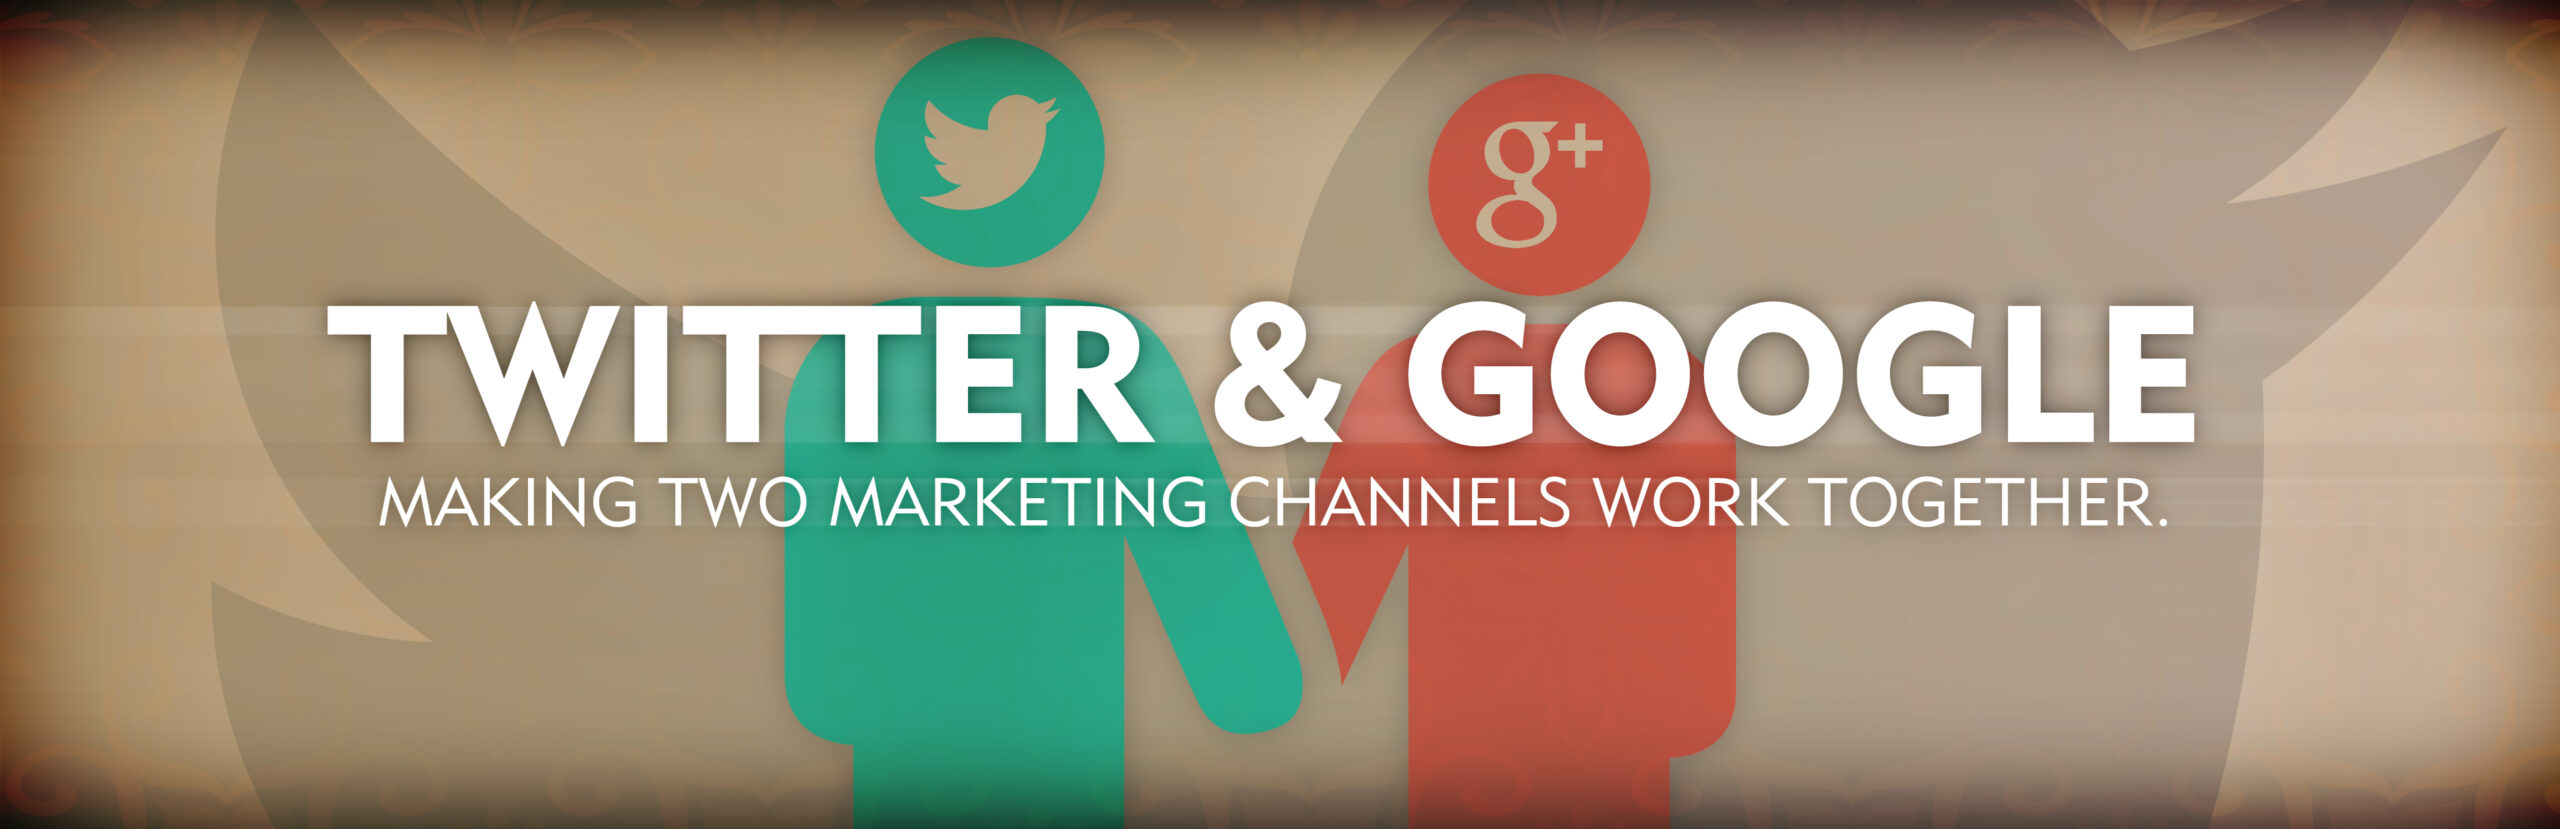 twitter and google social channels working together